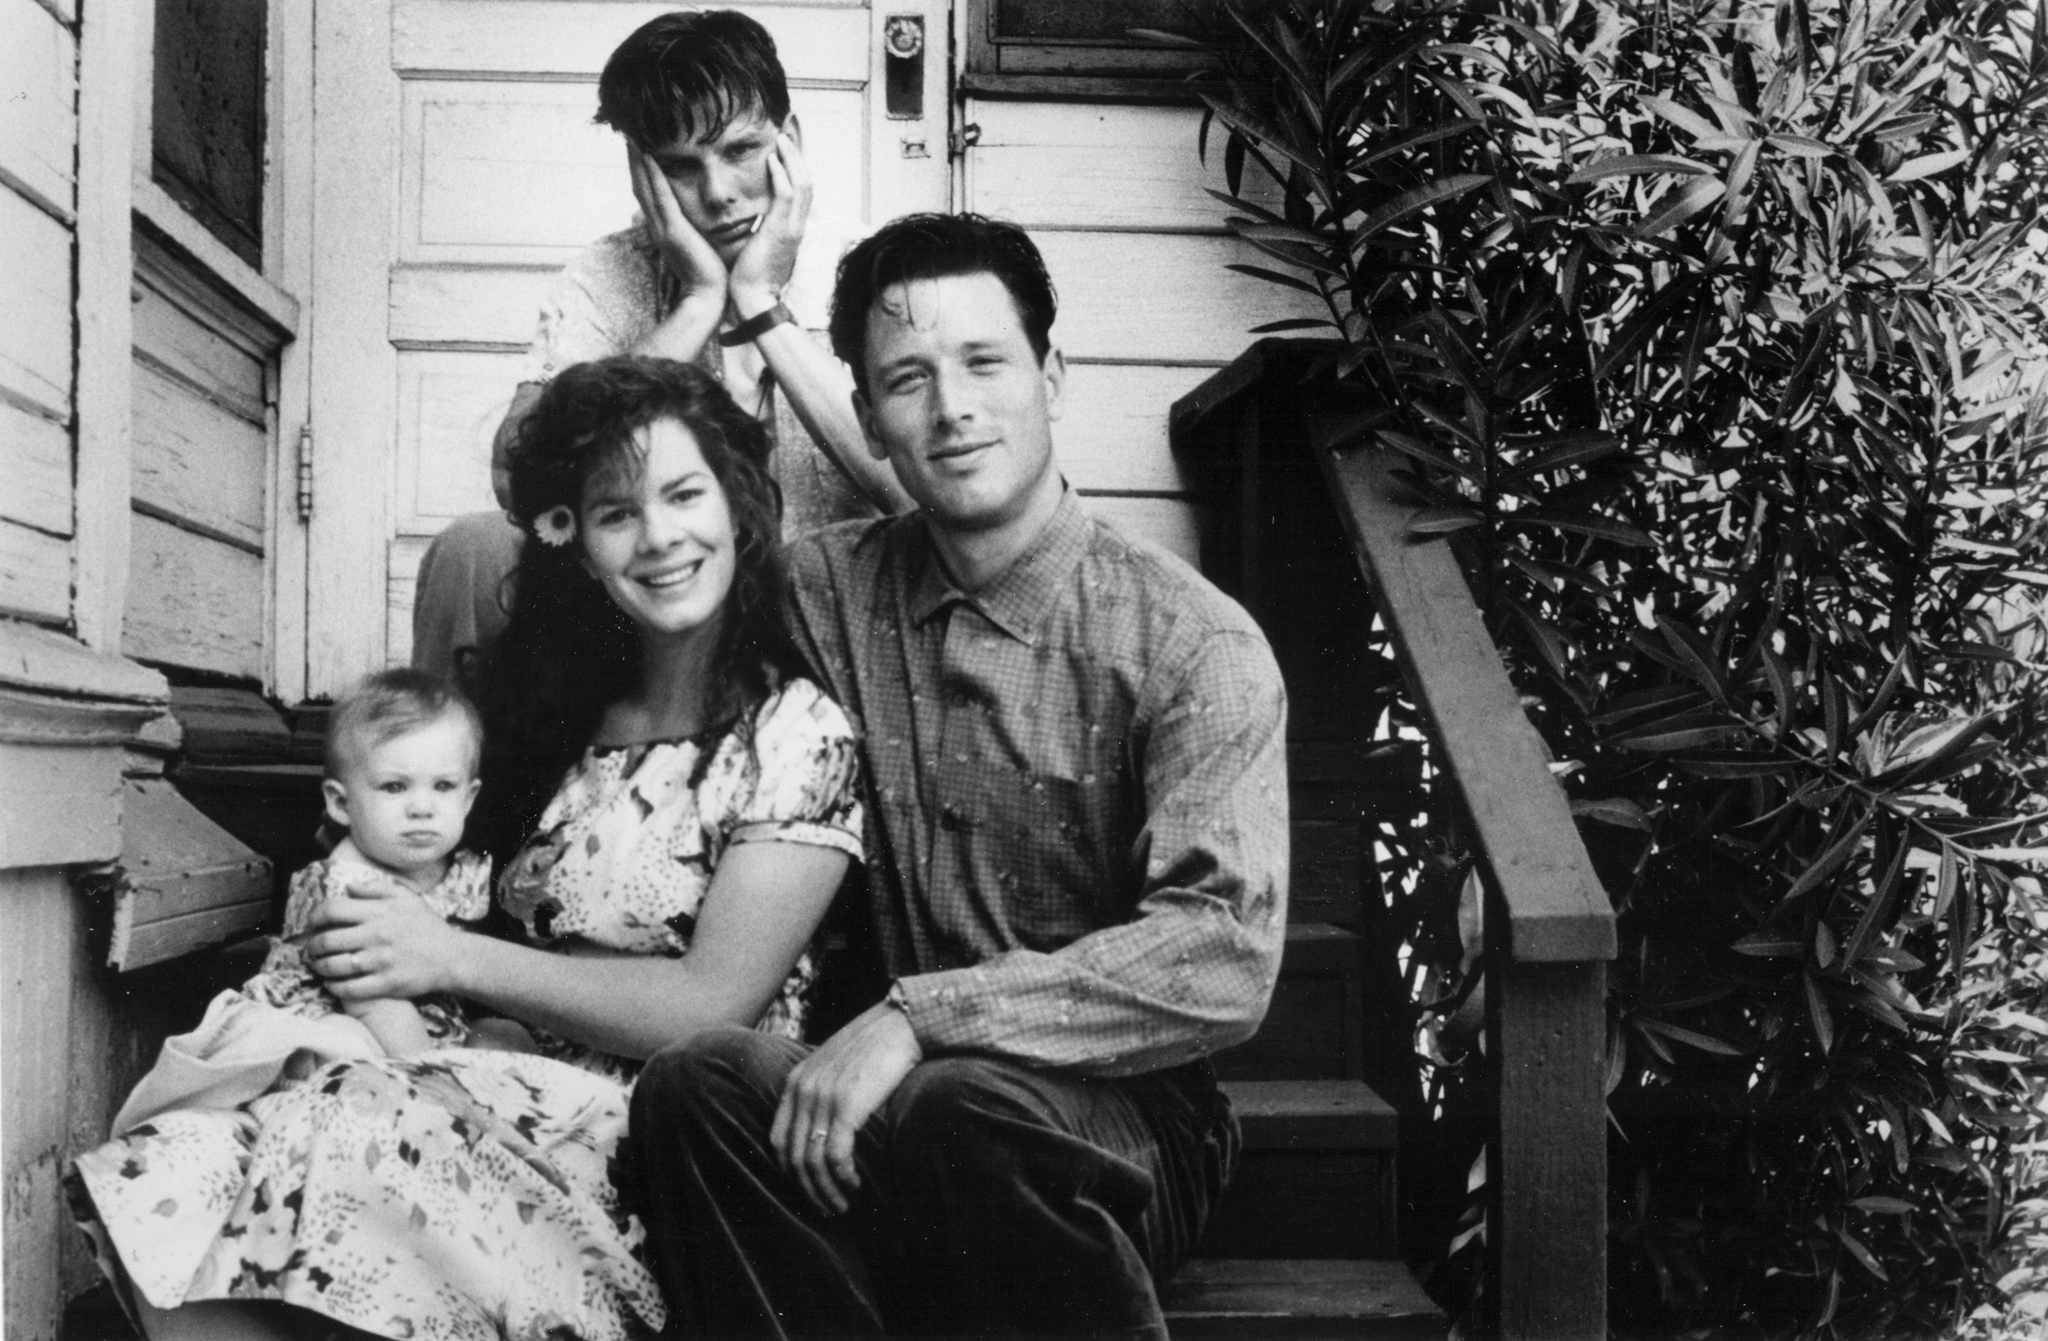 Peter Berg, Marcia Gay Harden, and Brian Wimmer in Late for Dinner (1991)